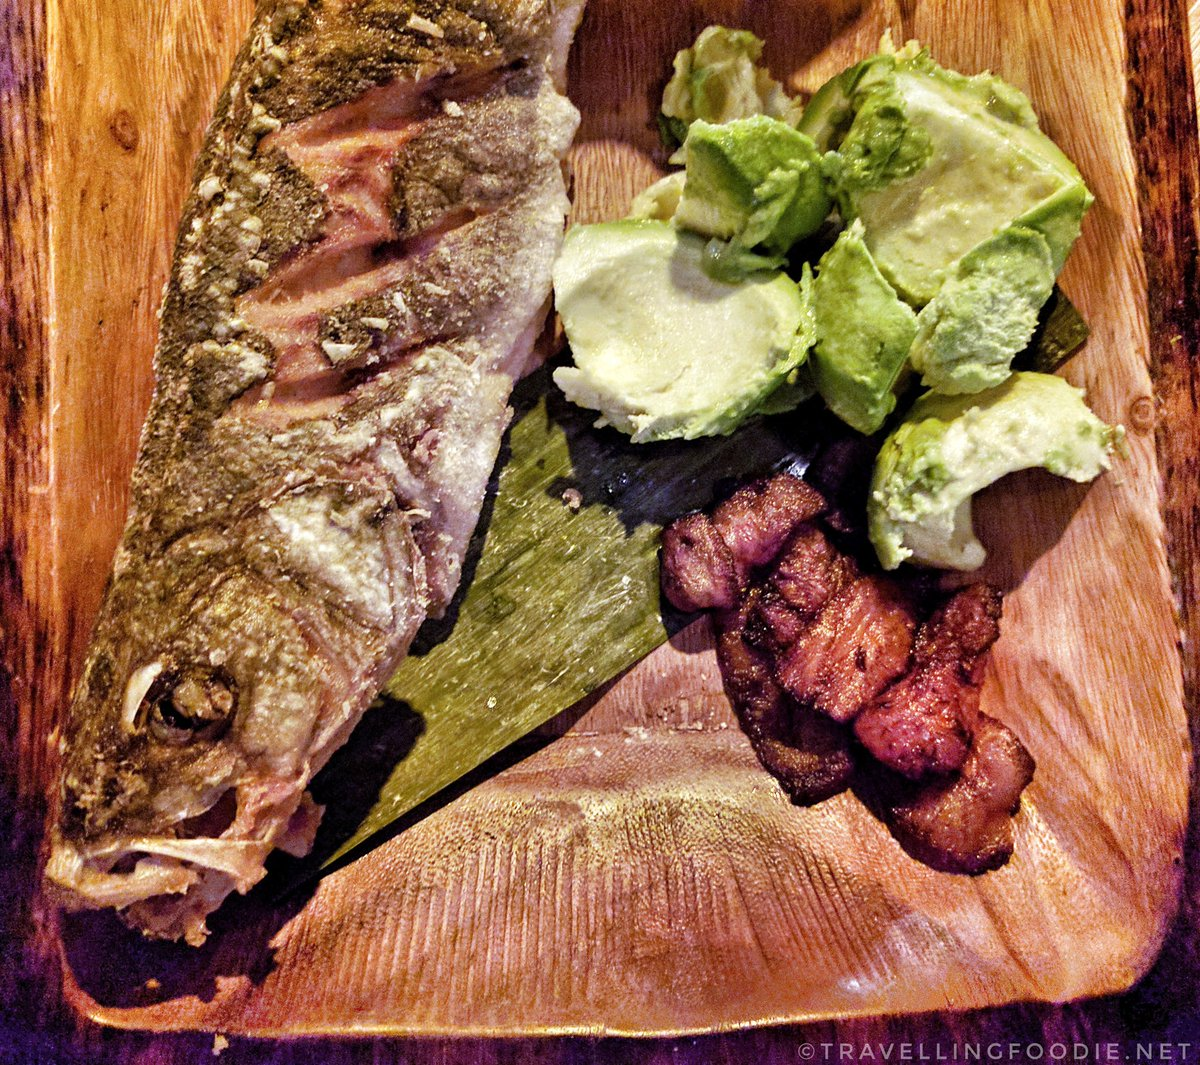 Traveling Foodie Eats Fried WHole Fish at Baro Toronto